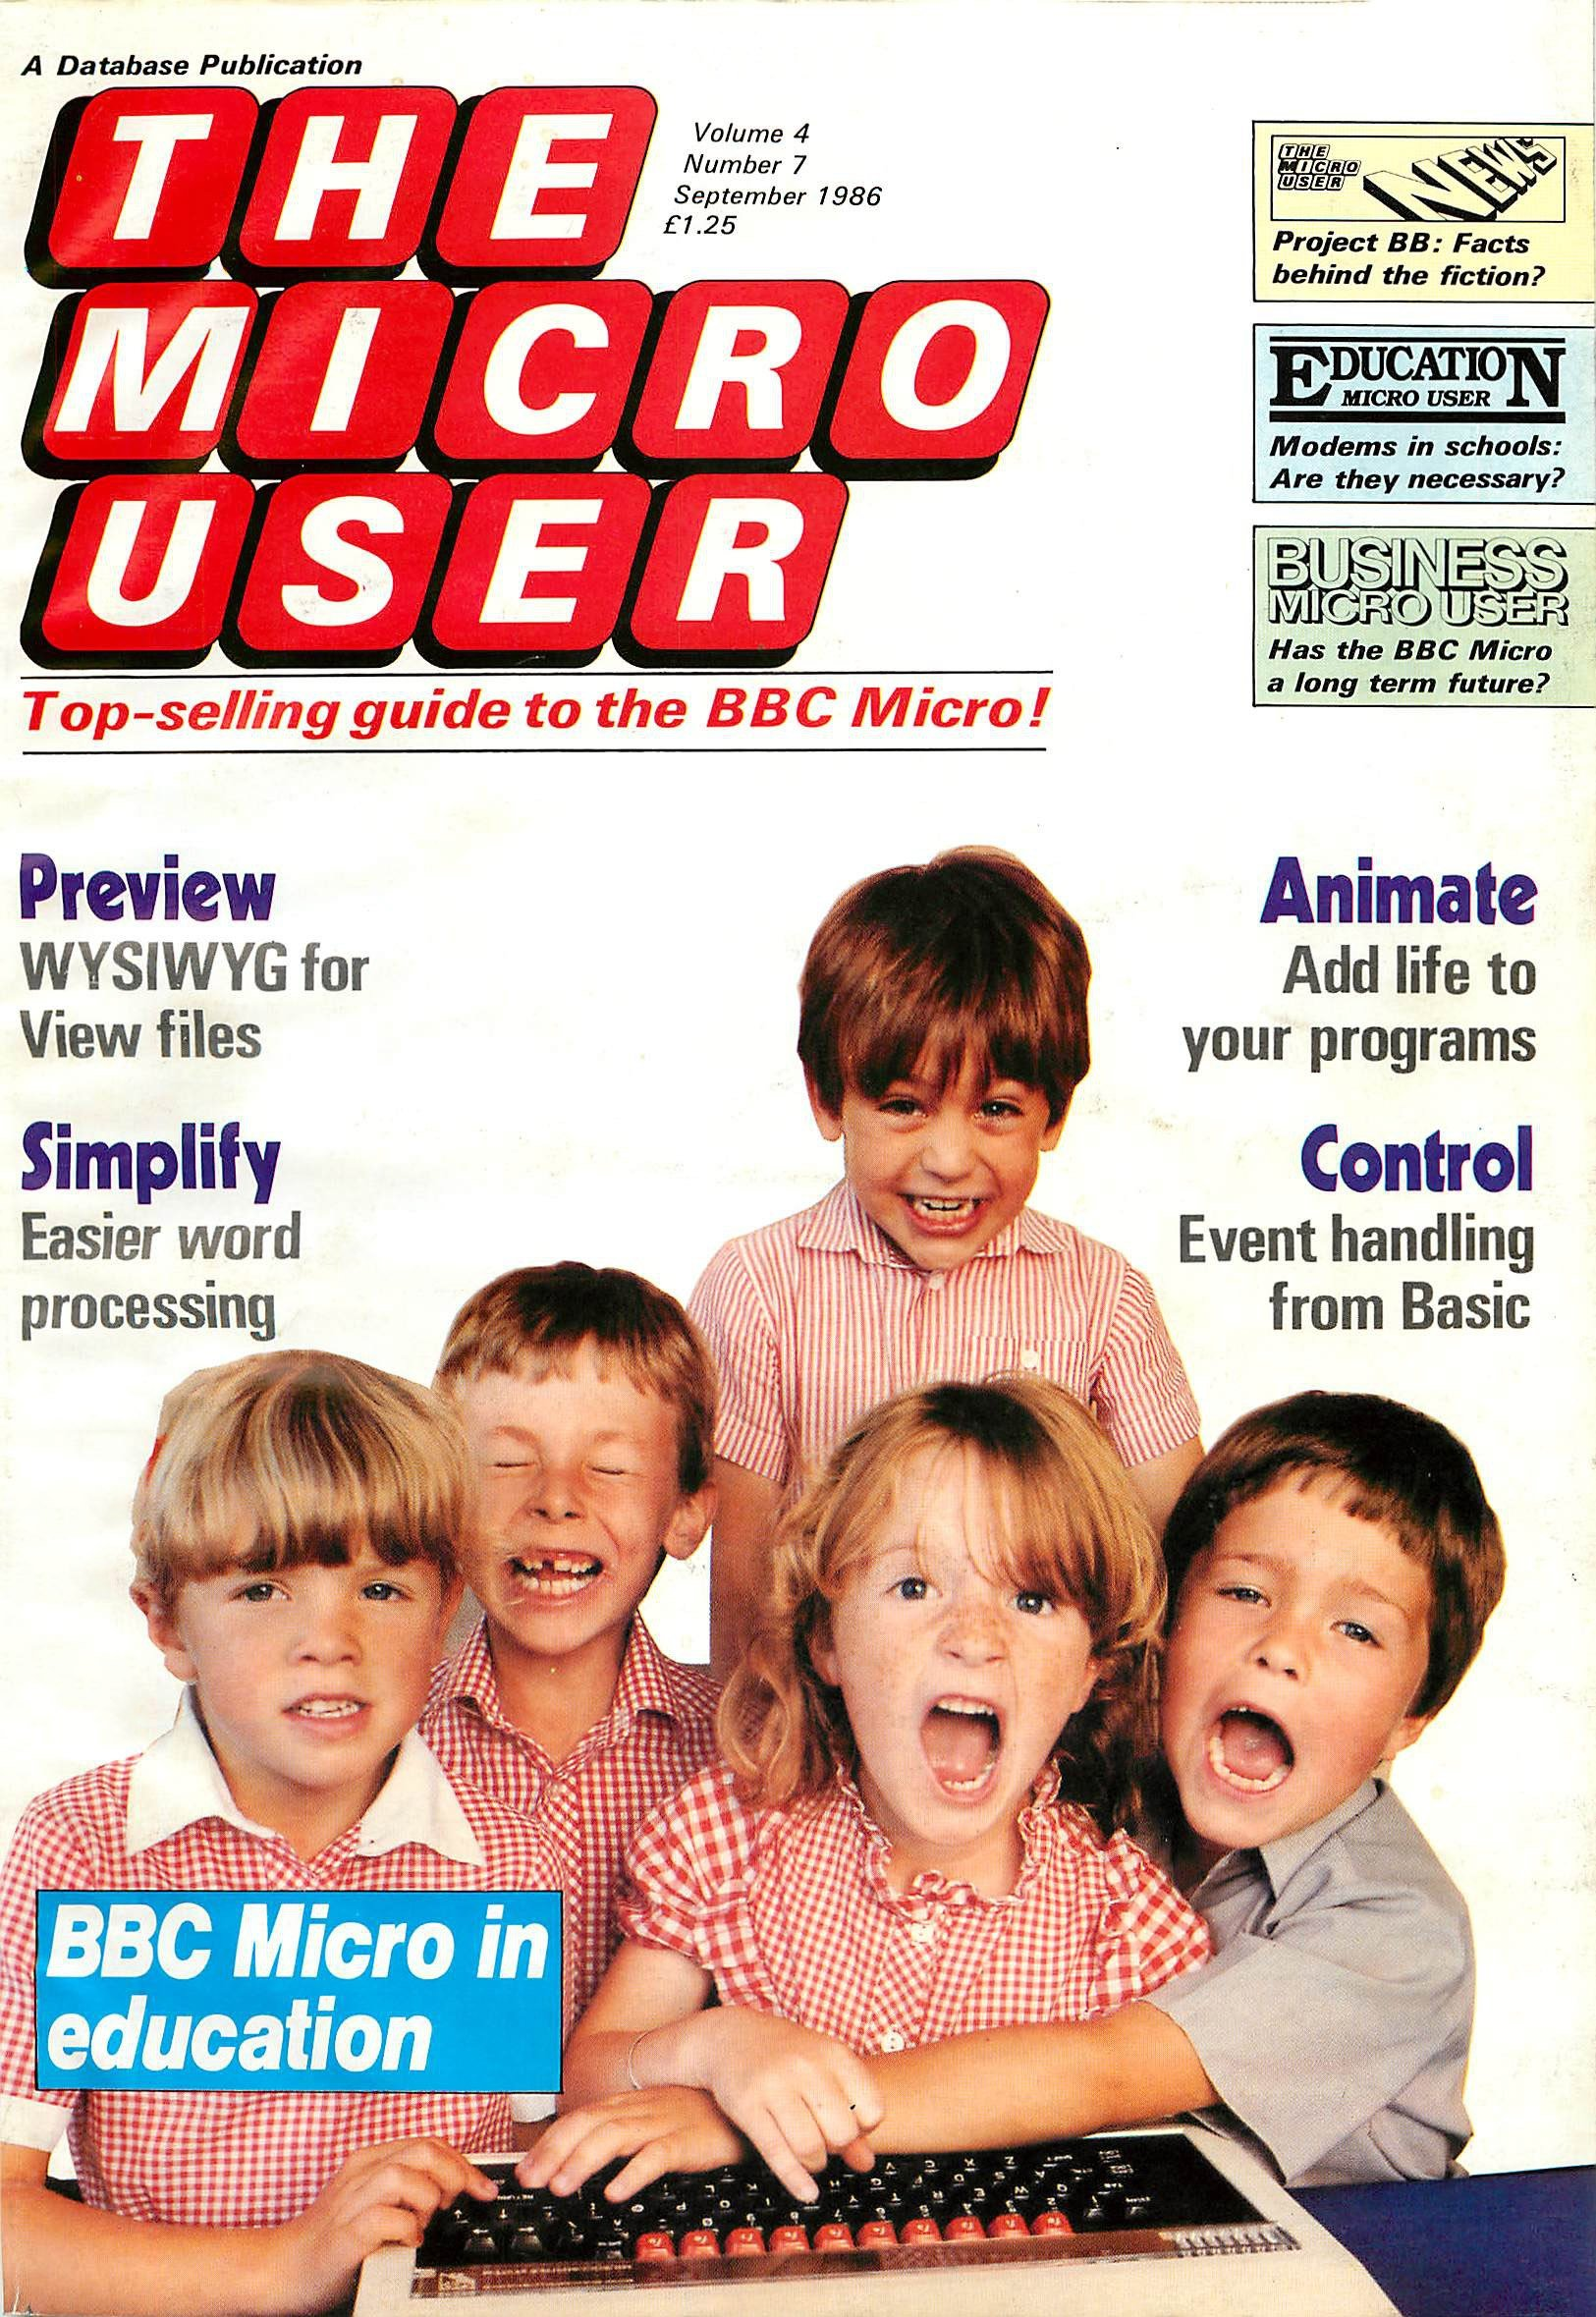 The Micro User Vol.04 No.07 (September 1986)